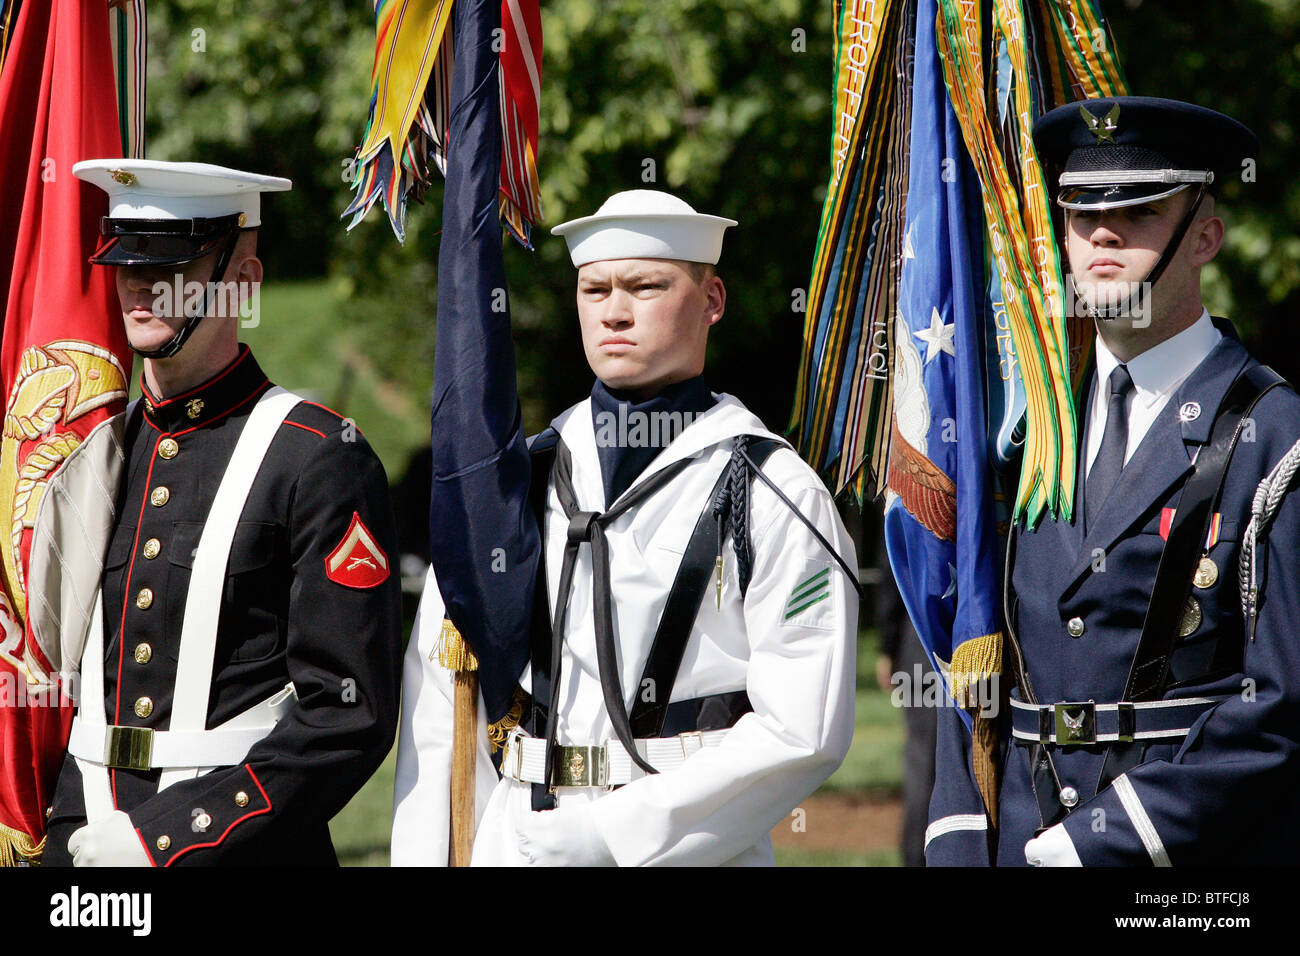 Military officers of the Army, Navy and Airforce form Honor Guard